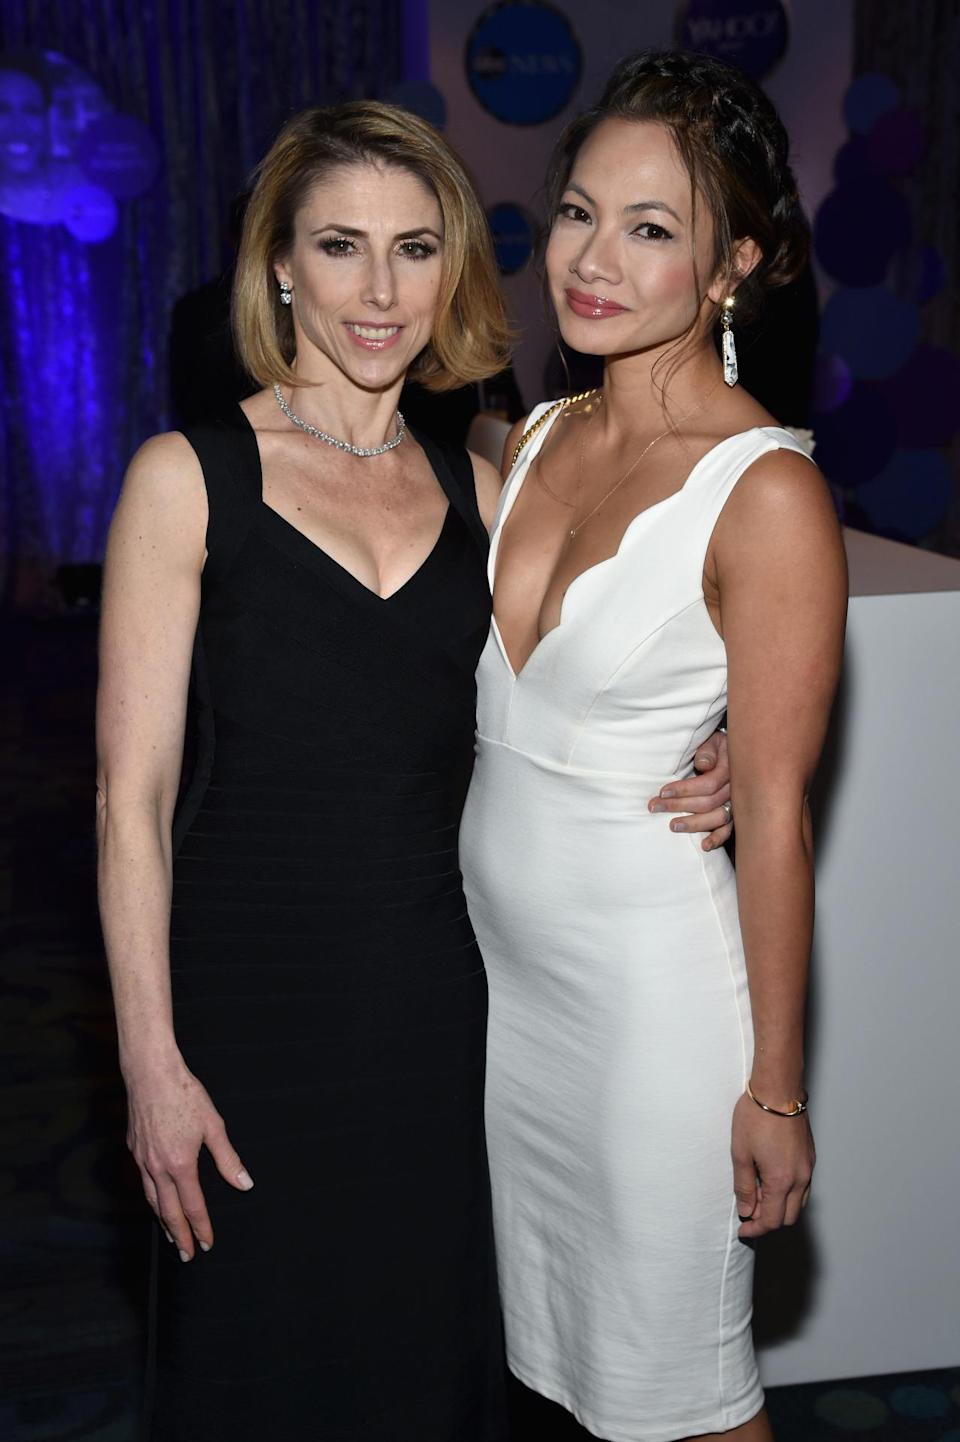 <p>Megan Liberman, editor in chief of Yahoo News and Finance, and Anne Espiritu, head of global PR at Yahoo, attend the Yahoo News/ABC News White House Correspondents' Dinner pre-party at the Washington Hilton, April 30. <i>(Photo: Dimitrios Kambouris/Getty Images for Yahoo)</i></p>